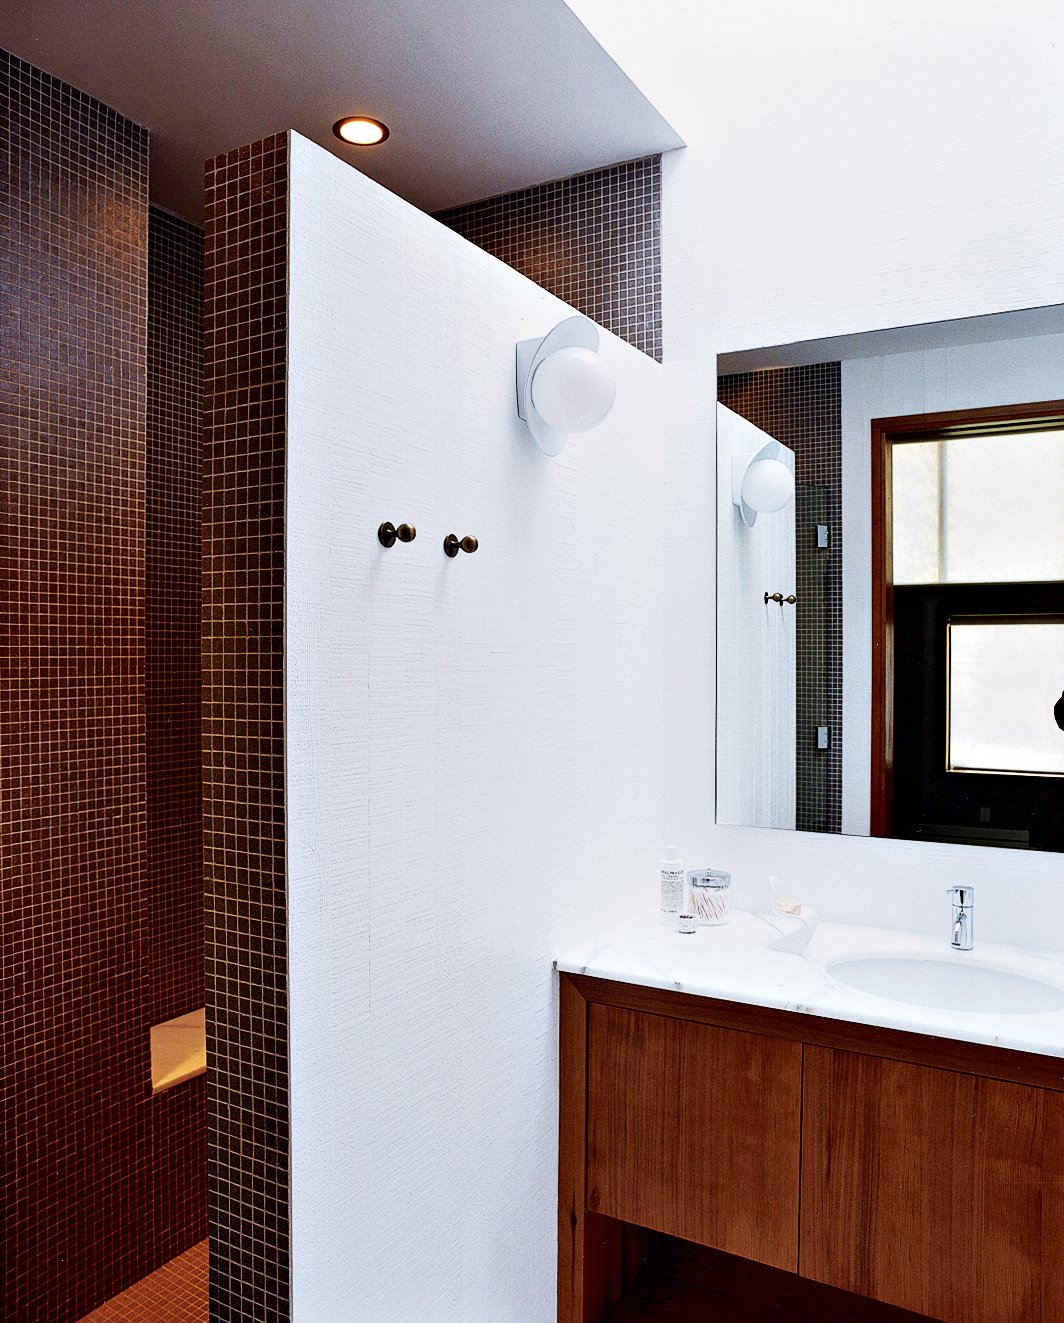 A double-size shower, clad floor-to-ceiling in tiny earth-toned tiles, was built after relocating the water heater and claiming its space. A chic yet discreet toilet is wall-hung and the tank concealed, greatly ameliorating the somewhat claustrophobic feel of the original bathroom. Tagged: Bath Room, Marble Counter, Enclosed Shower, Full Shower, Ceiling Lighting, and Ceramic Tile Wall.  Photo 5 of 6 in The Pace of Portland